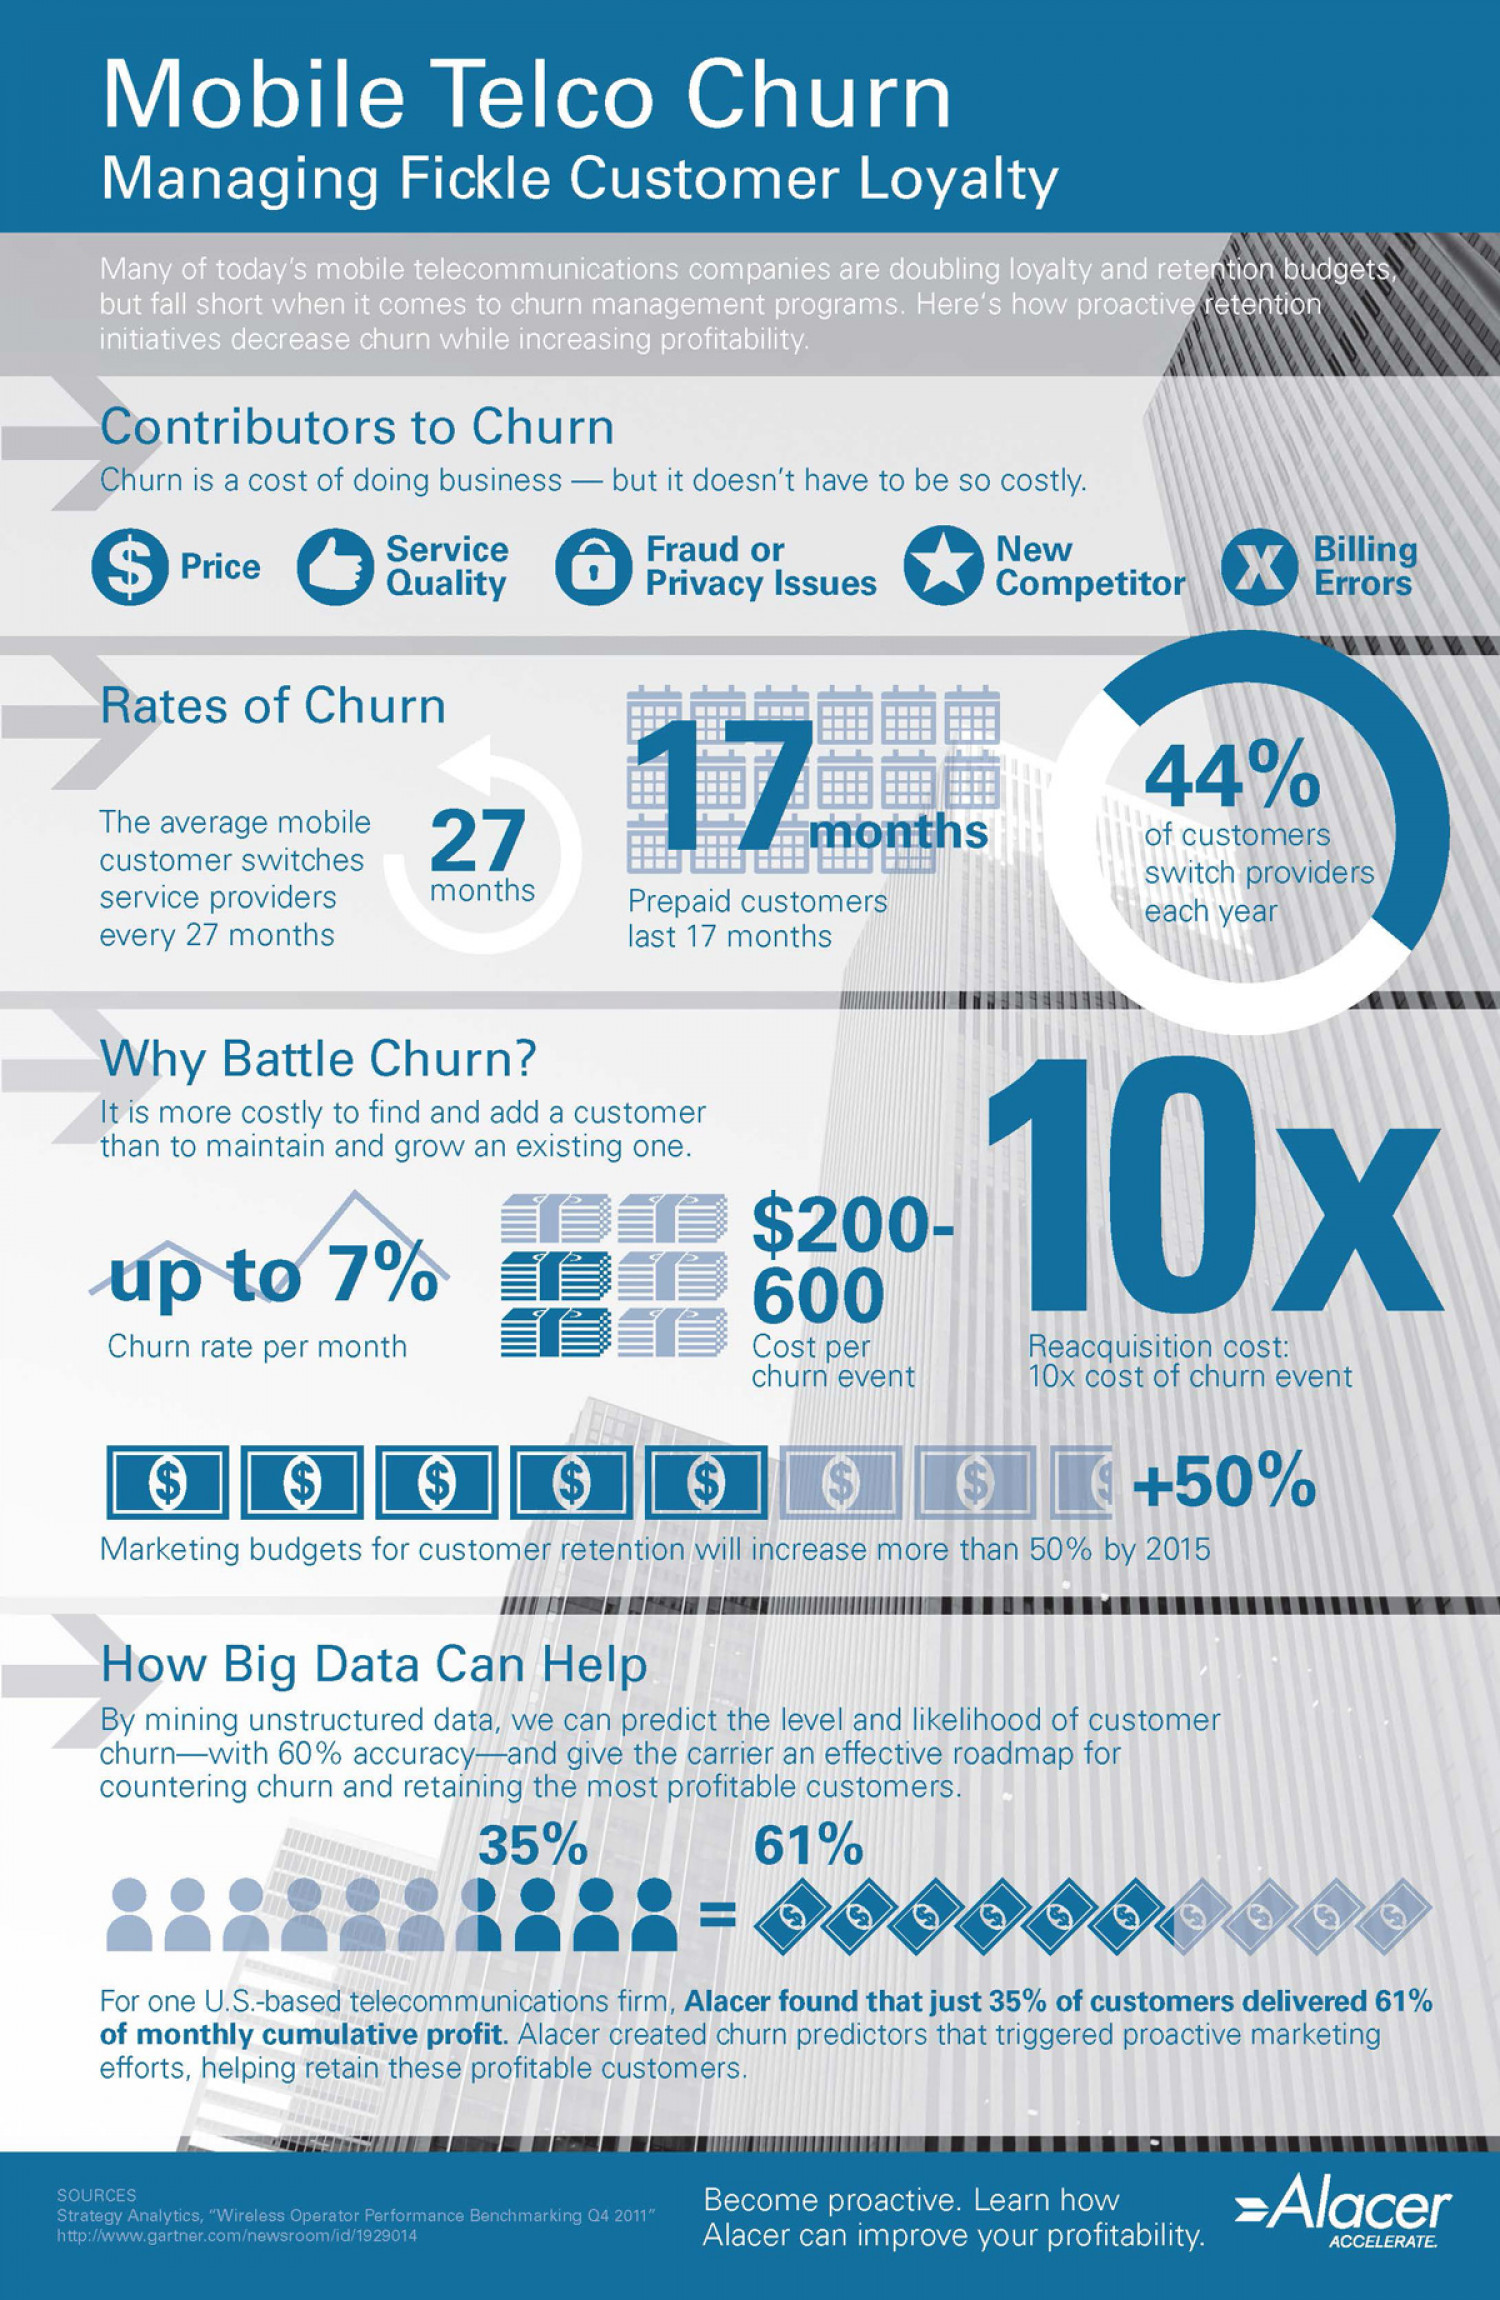 Mobile Telco Churn: Managing Fickle Customer Loyalty Infographic